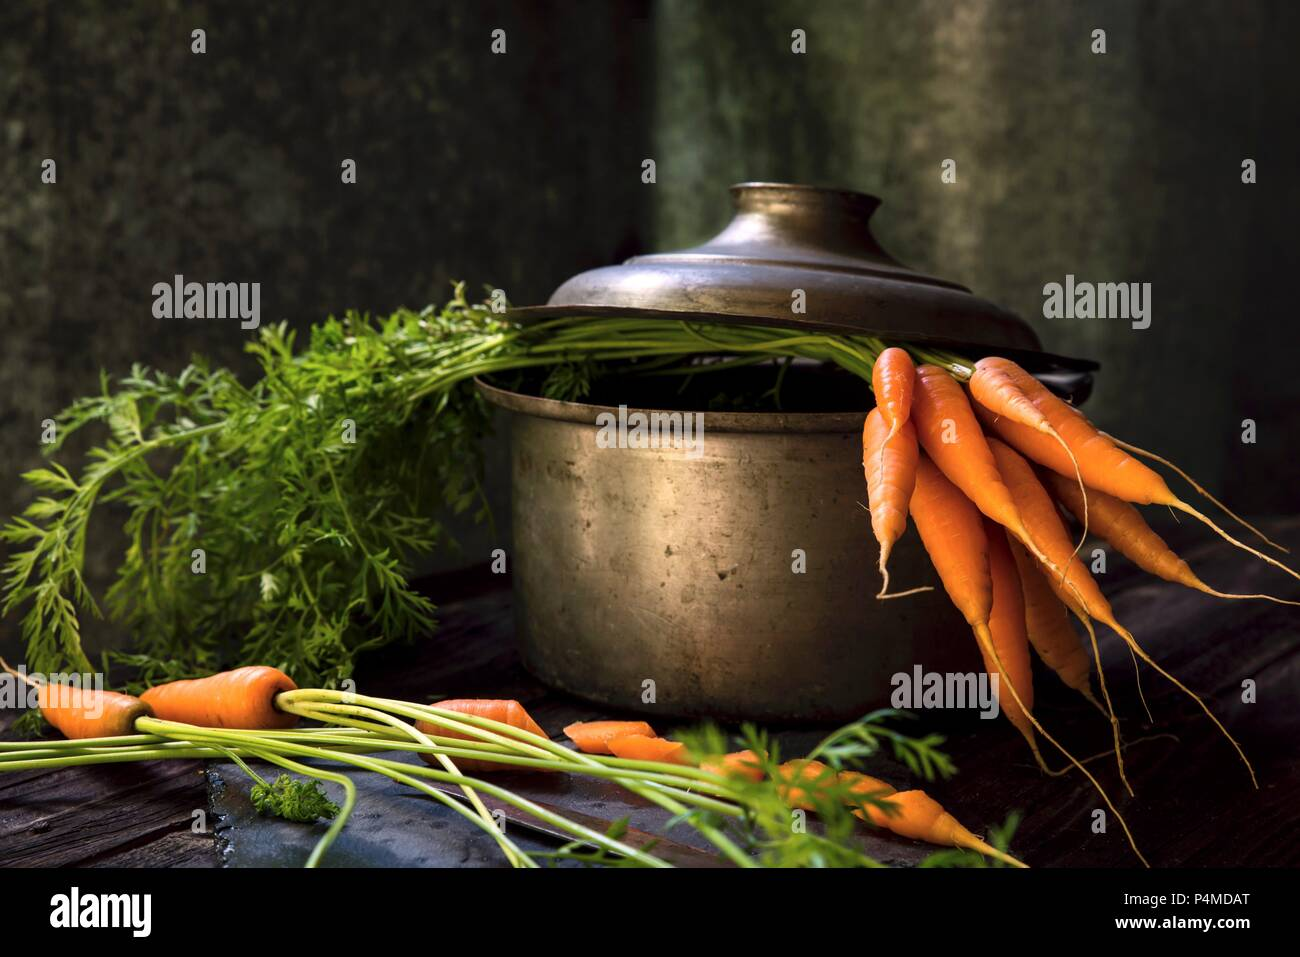 Fresh carrots in a cooking pot - Stock Image